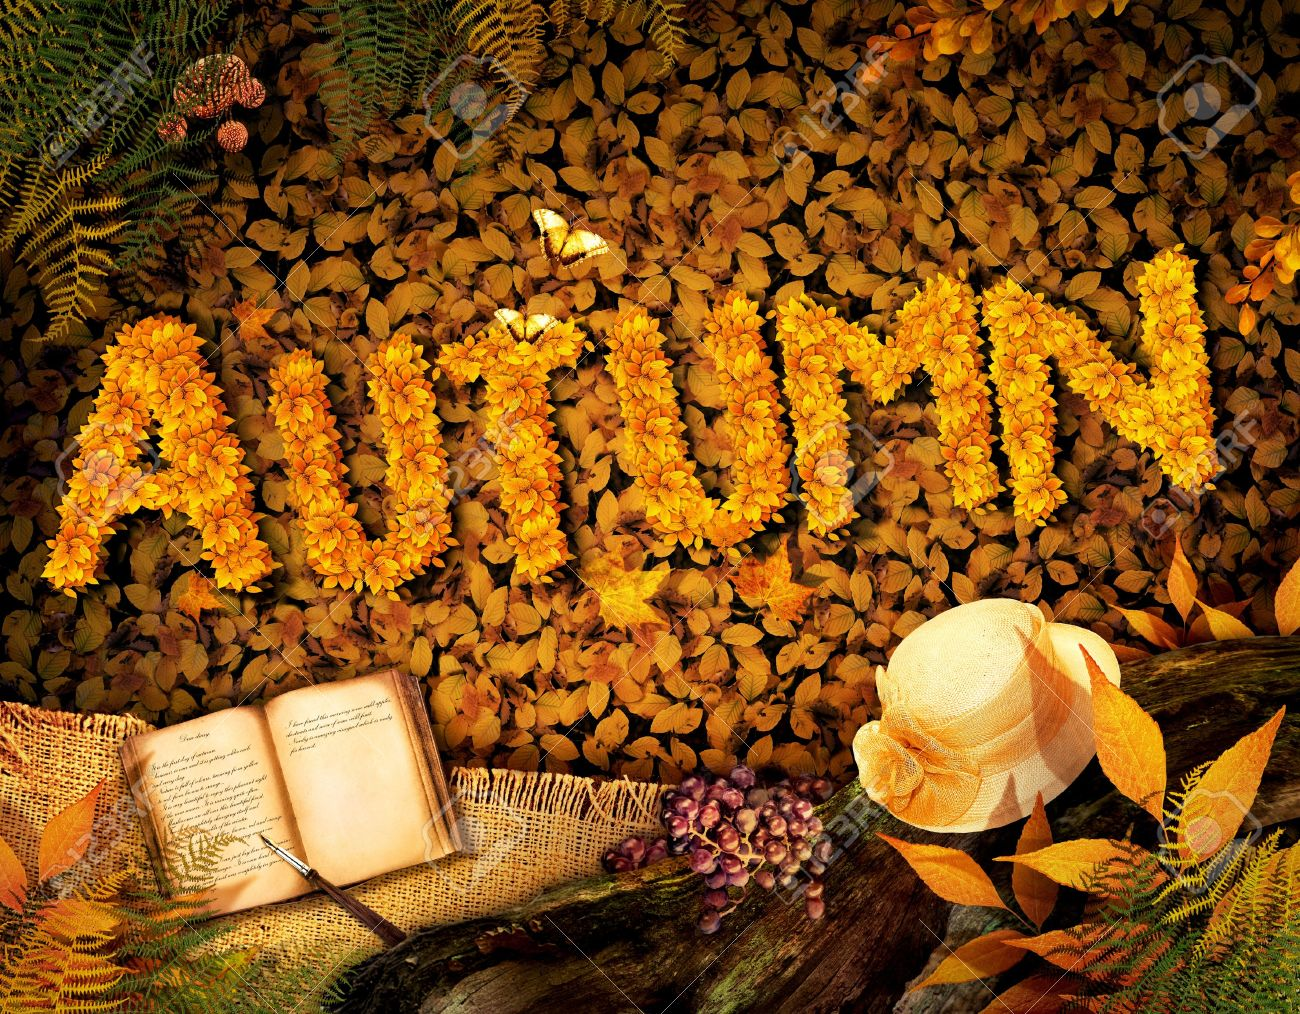 Autumn season concept design. Fall background with text in beautiful yellow forest. Vintage design with autumn fruit, mushrooms, leaves and book diary. Stock Photo - 14982538